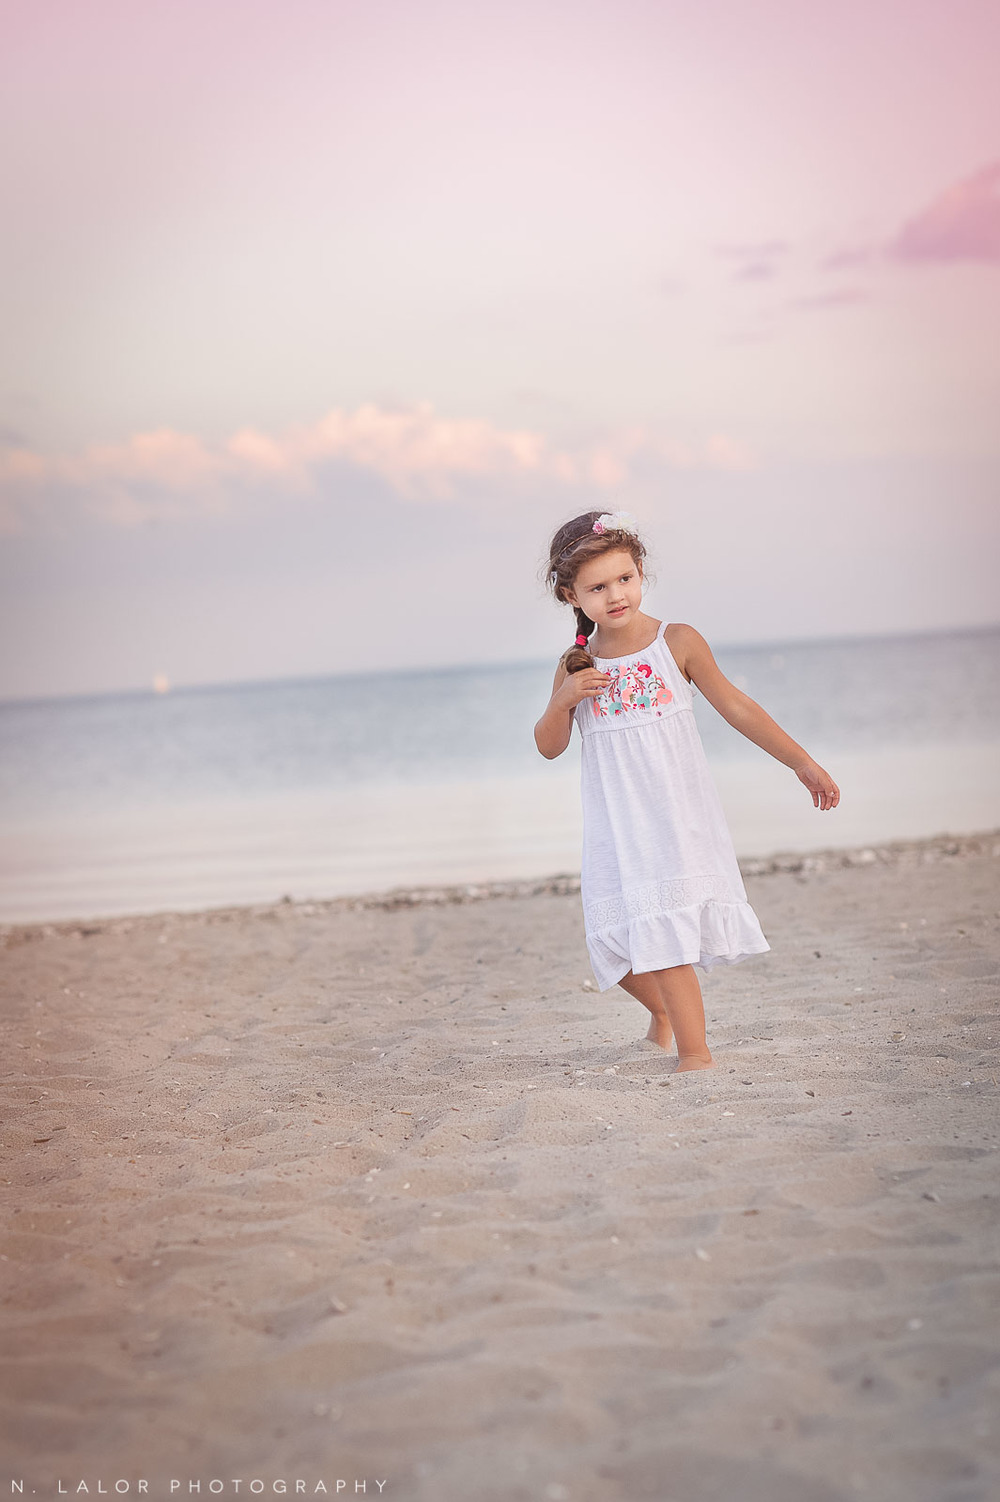 nlalor-photography-styled-beach-photo-session-milford-ct-9.jpg